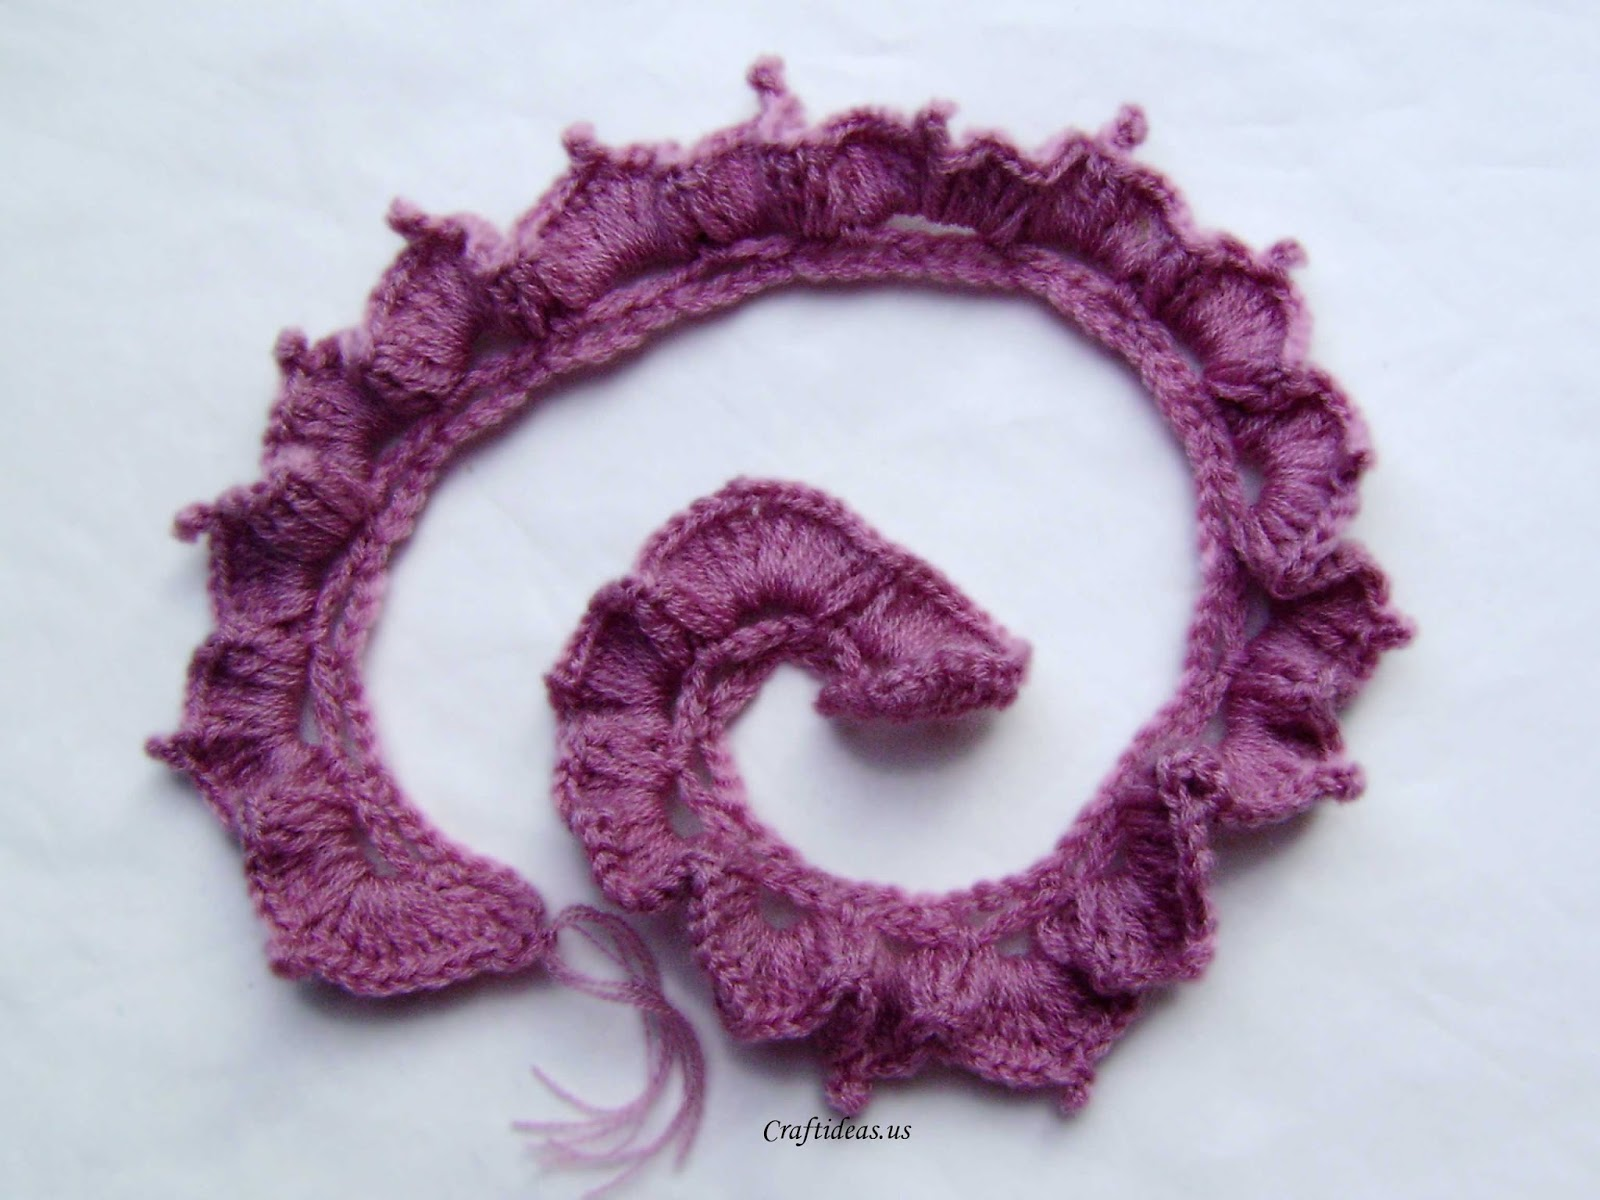 ergahandmade: Crochet Rose + Free Pattern Step By Step